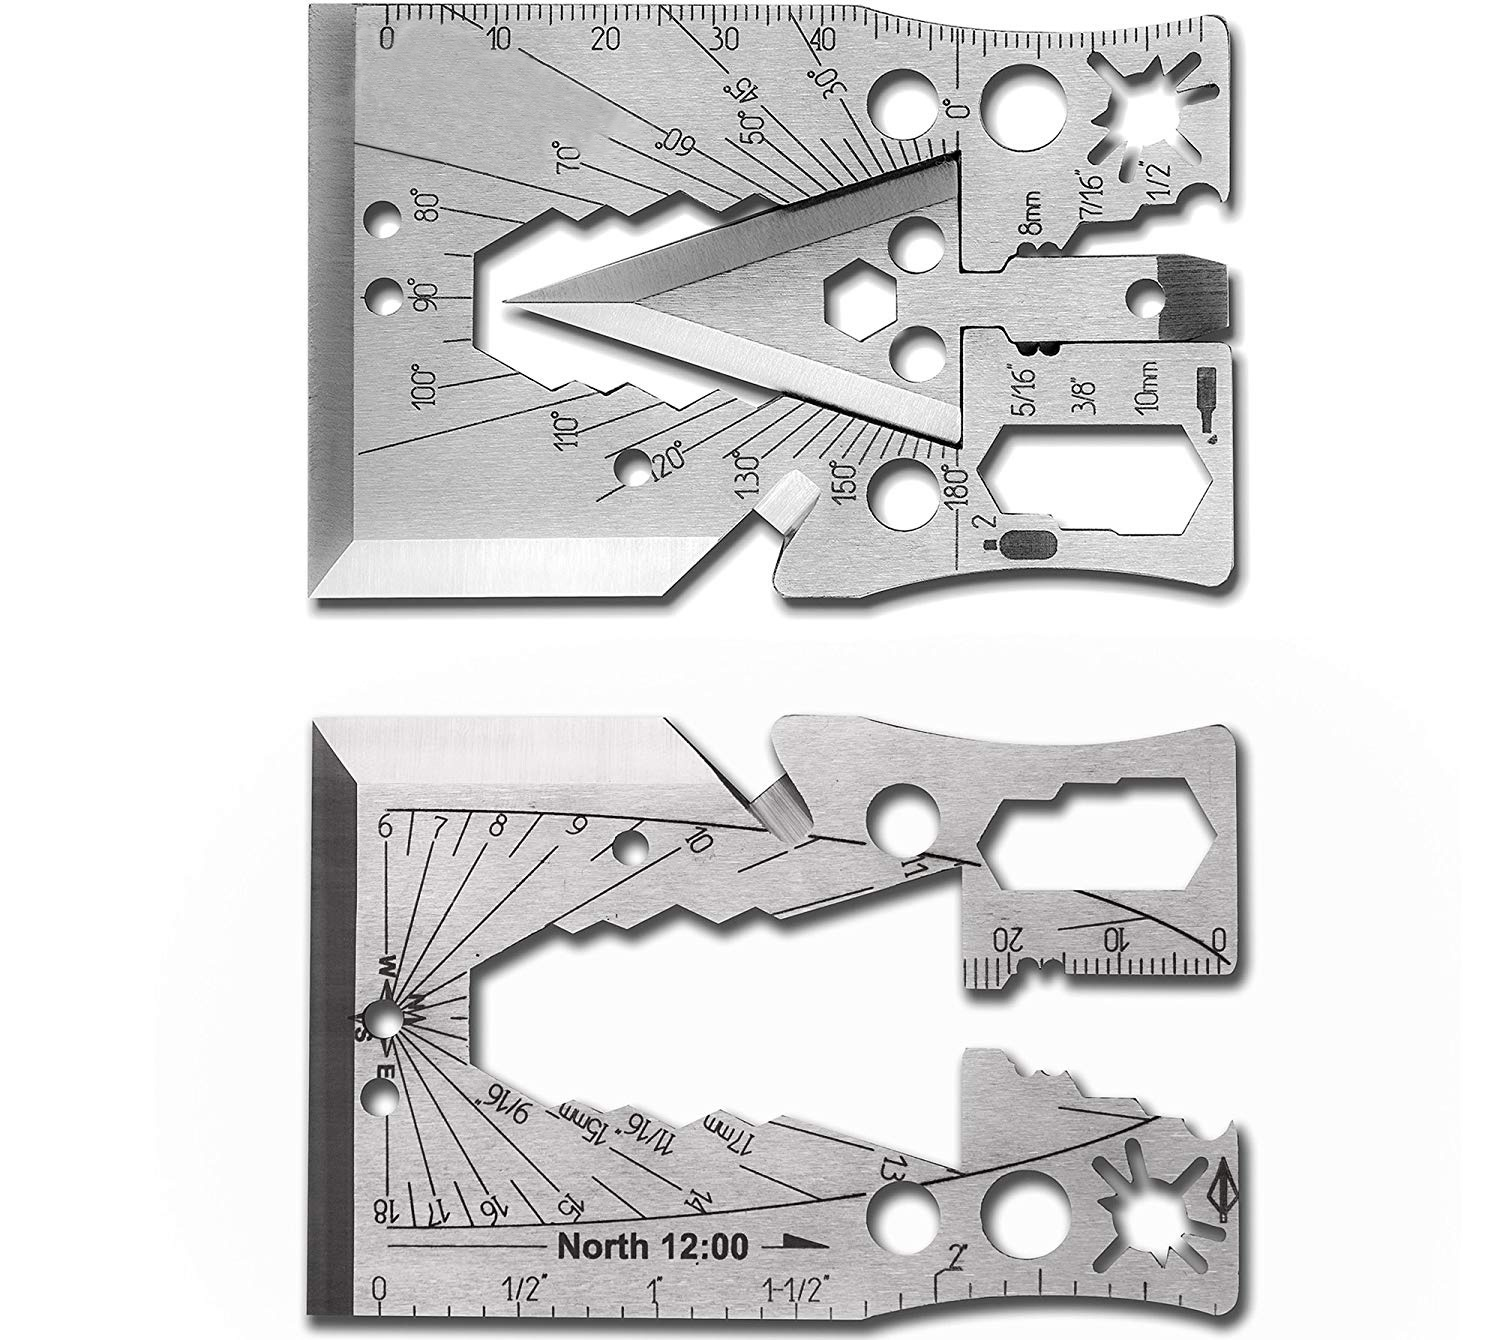 40+ Tools in 1 Multitool Credit Card Best as Survival Tool Knife Arrow Can and Bottle Opener Gift for Men